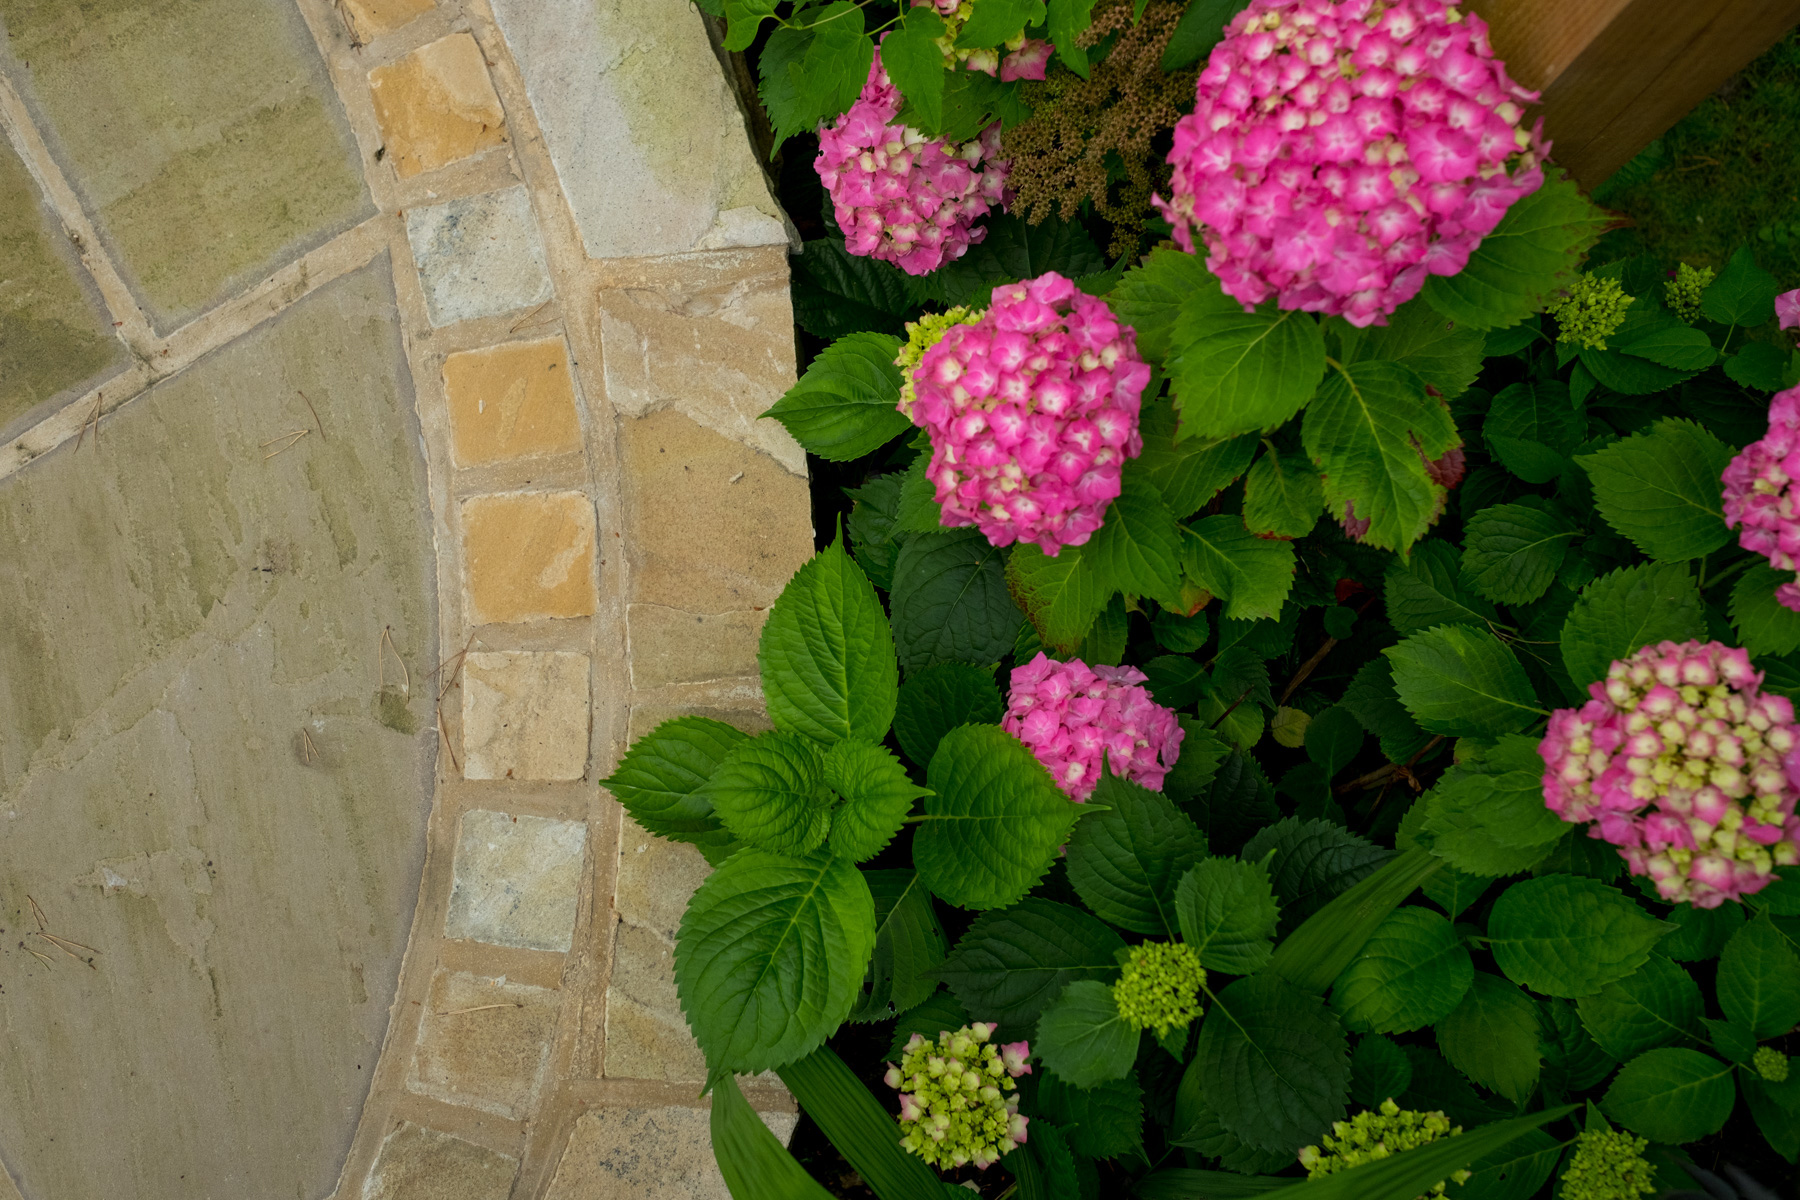 Hydrangea. Leeds garden design and build, planting plans